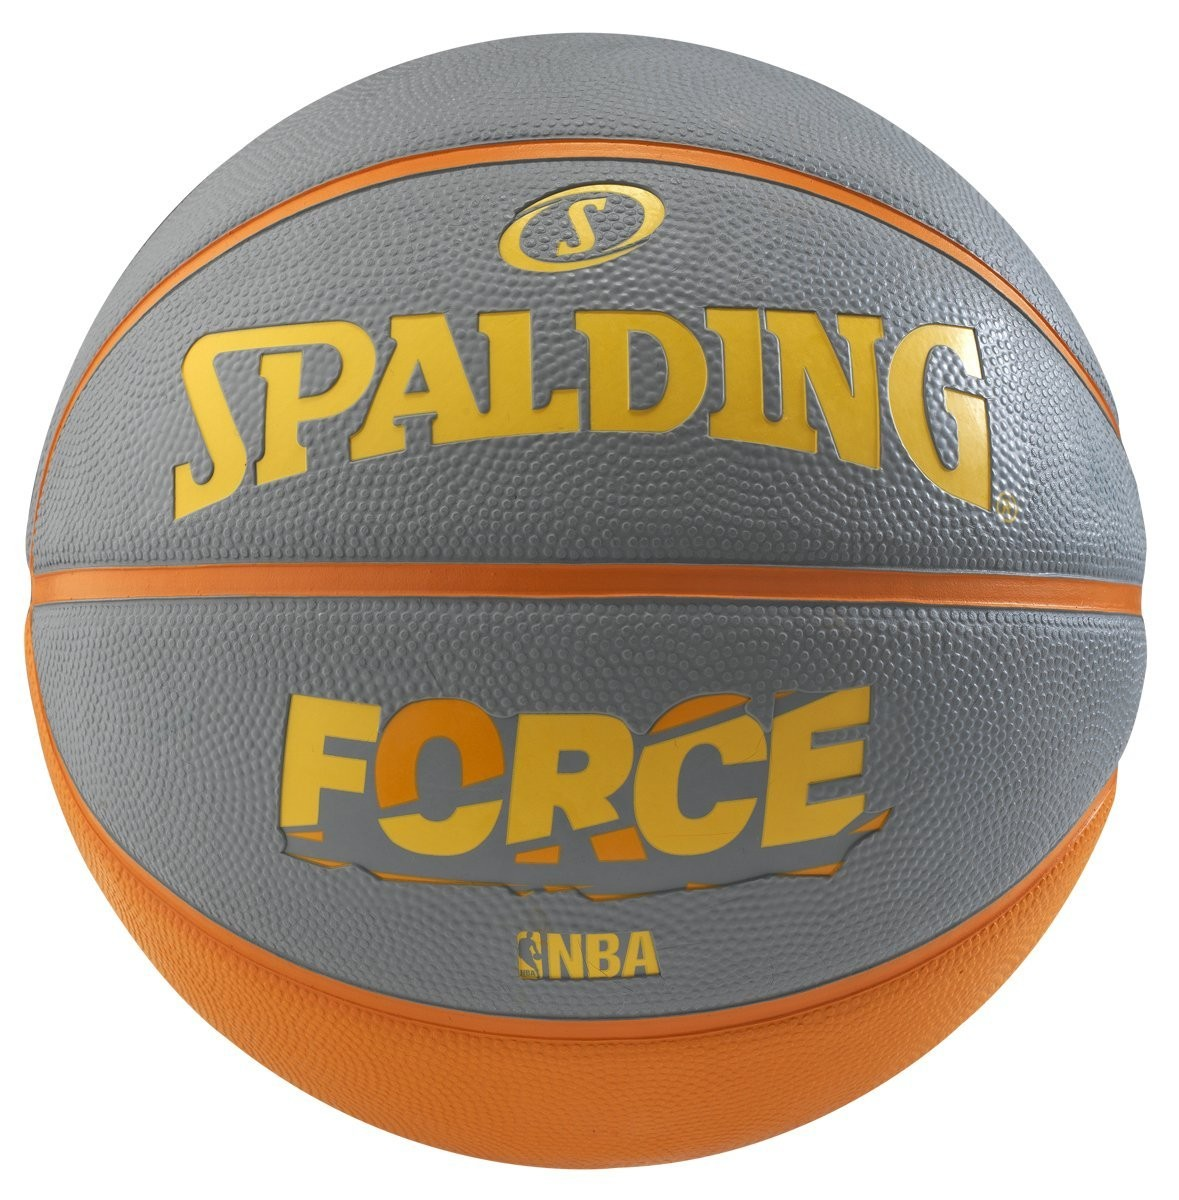 Spalding Force Basketball Size 6